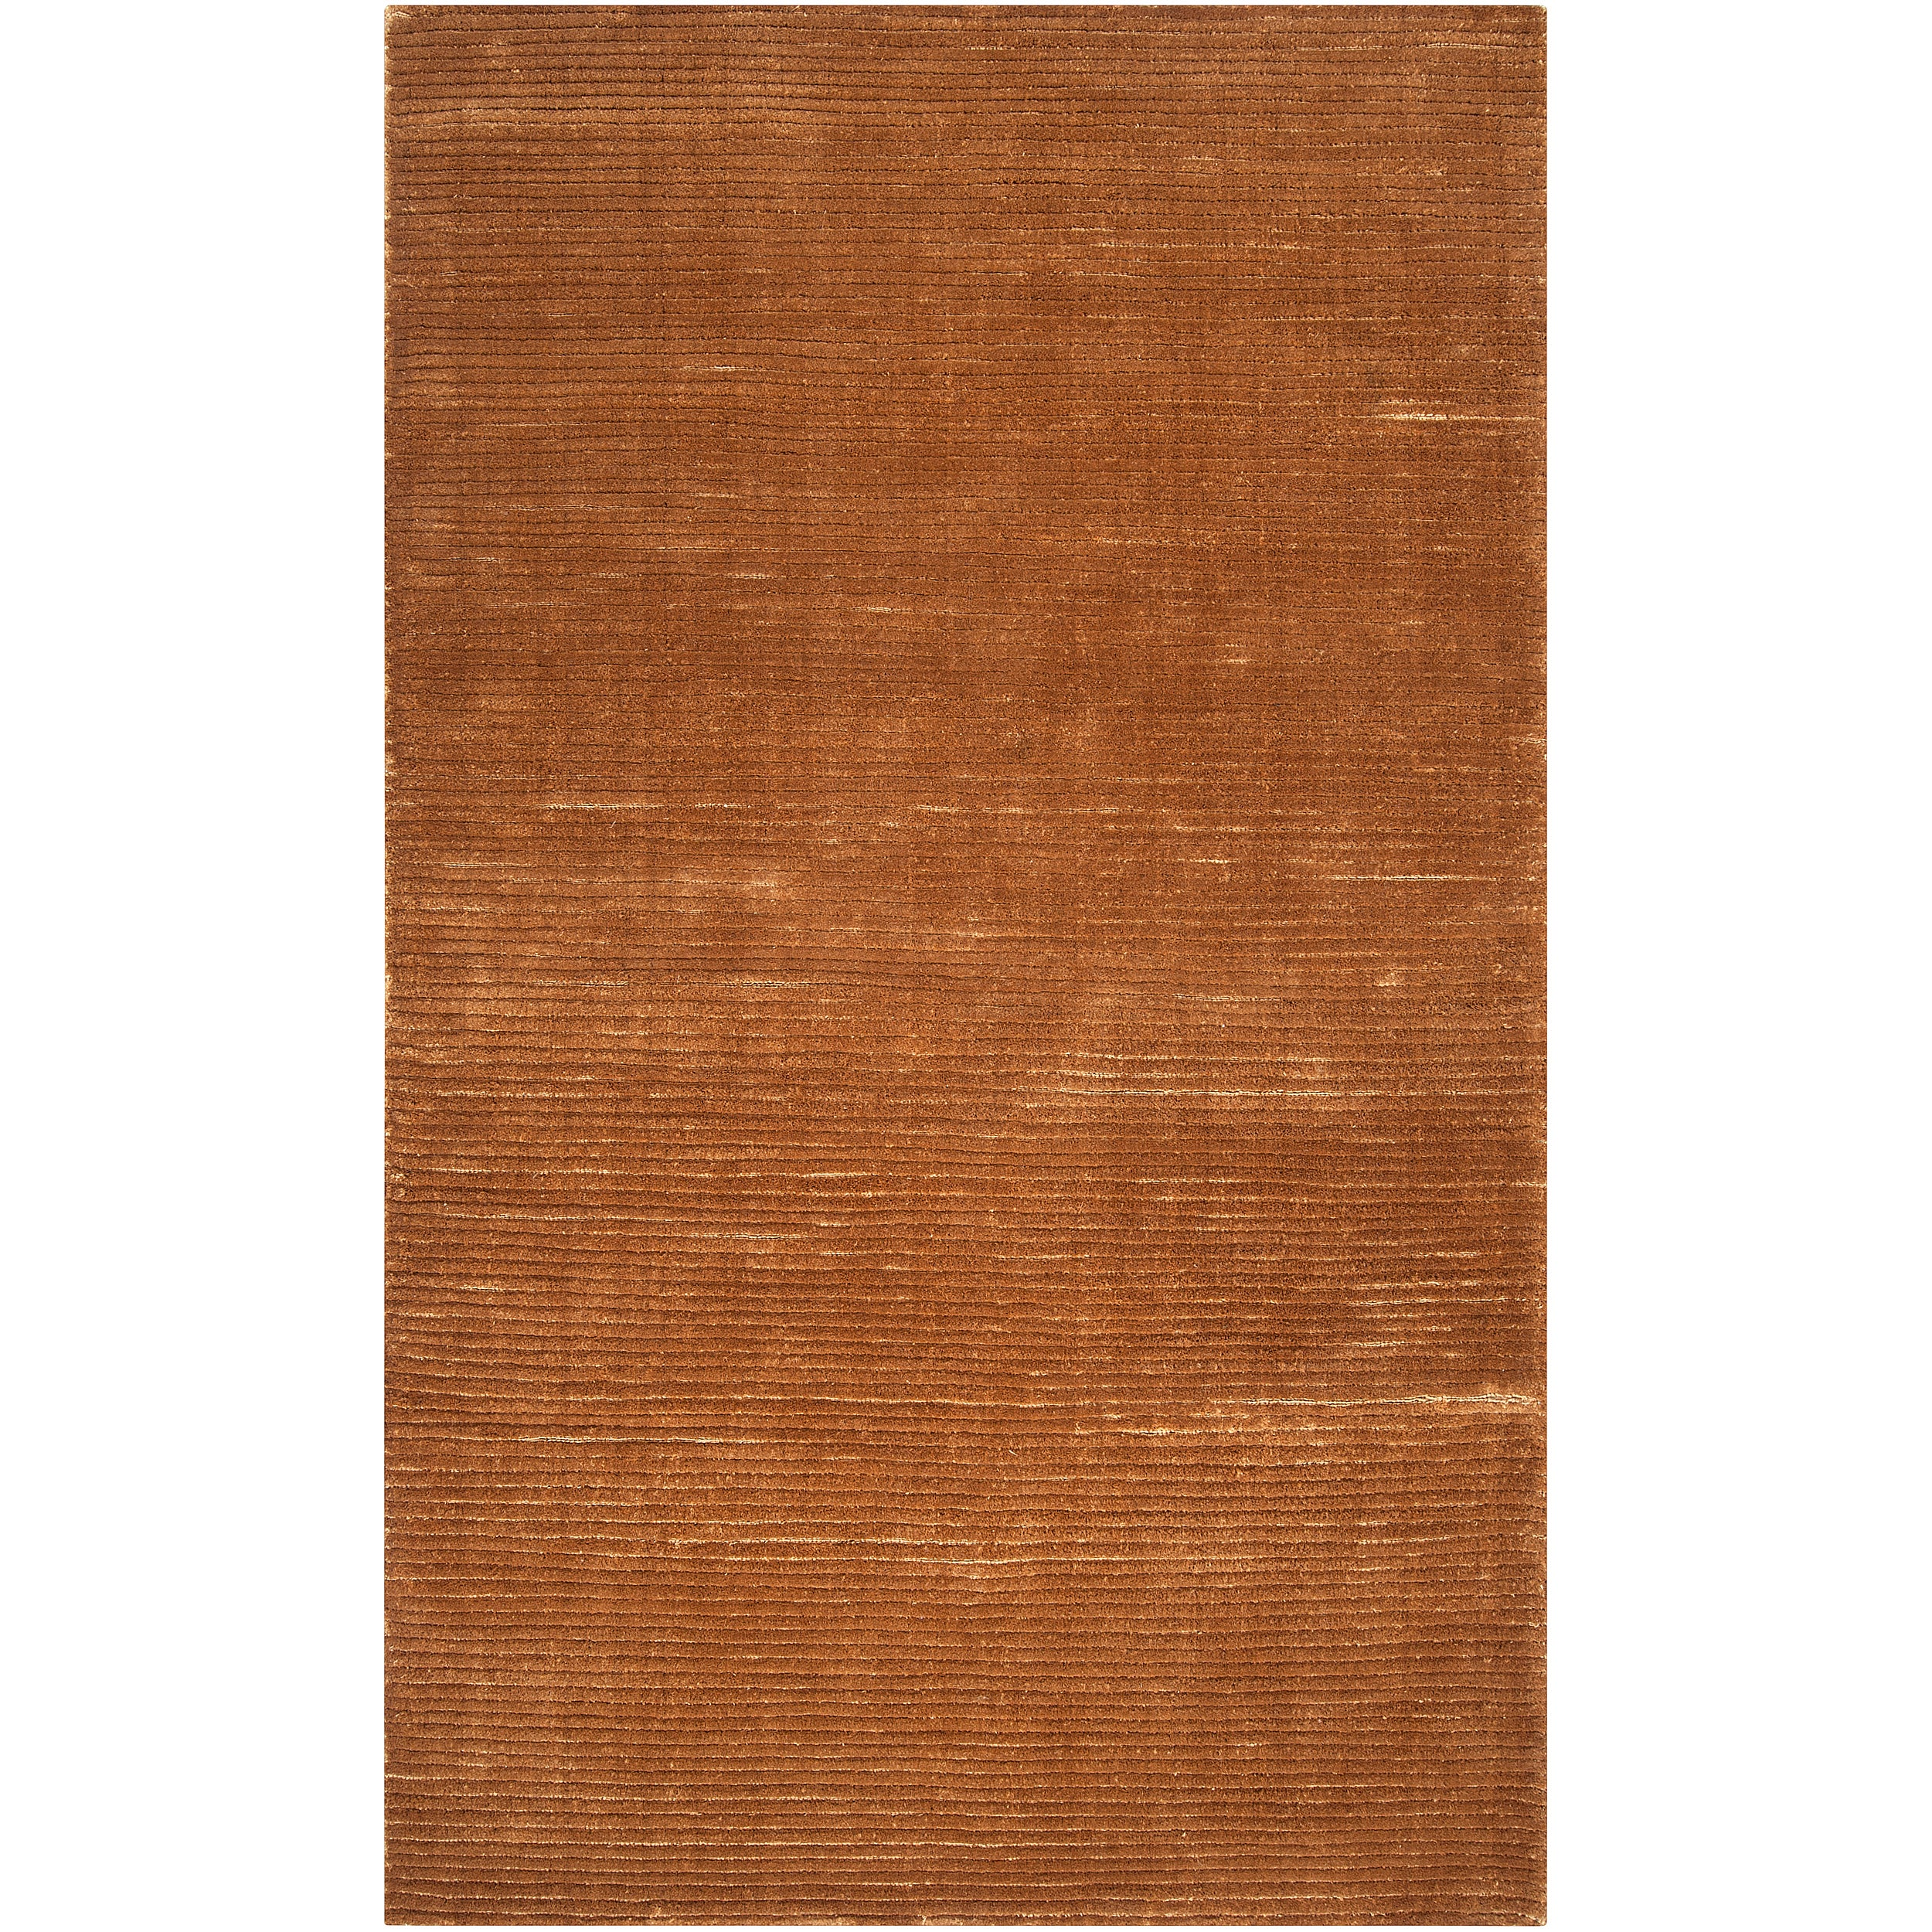 Hand-woven Solid Golden Brown Casual Portage Rug (2' x 3')